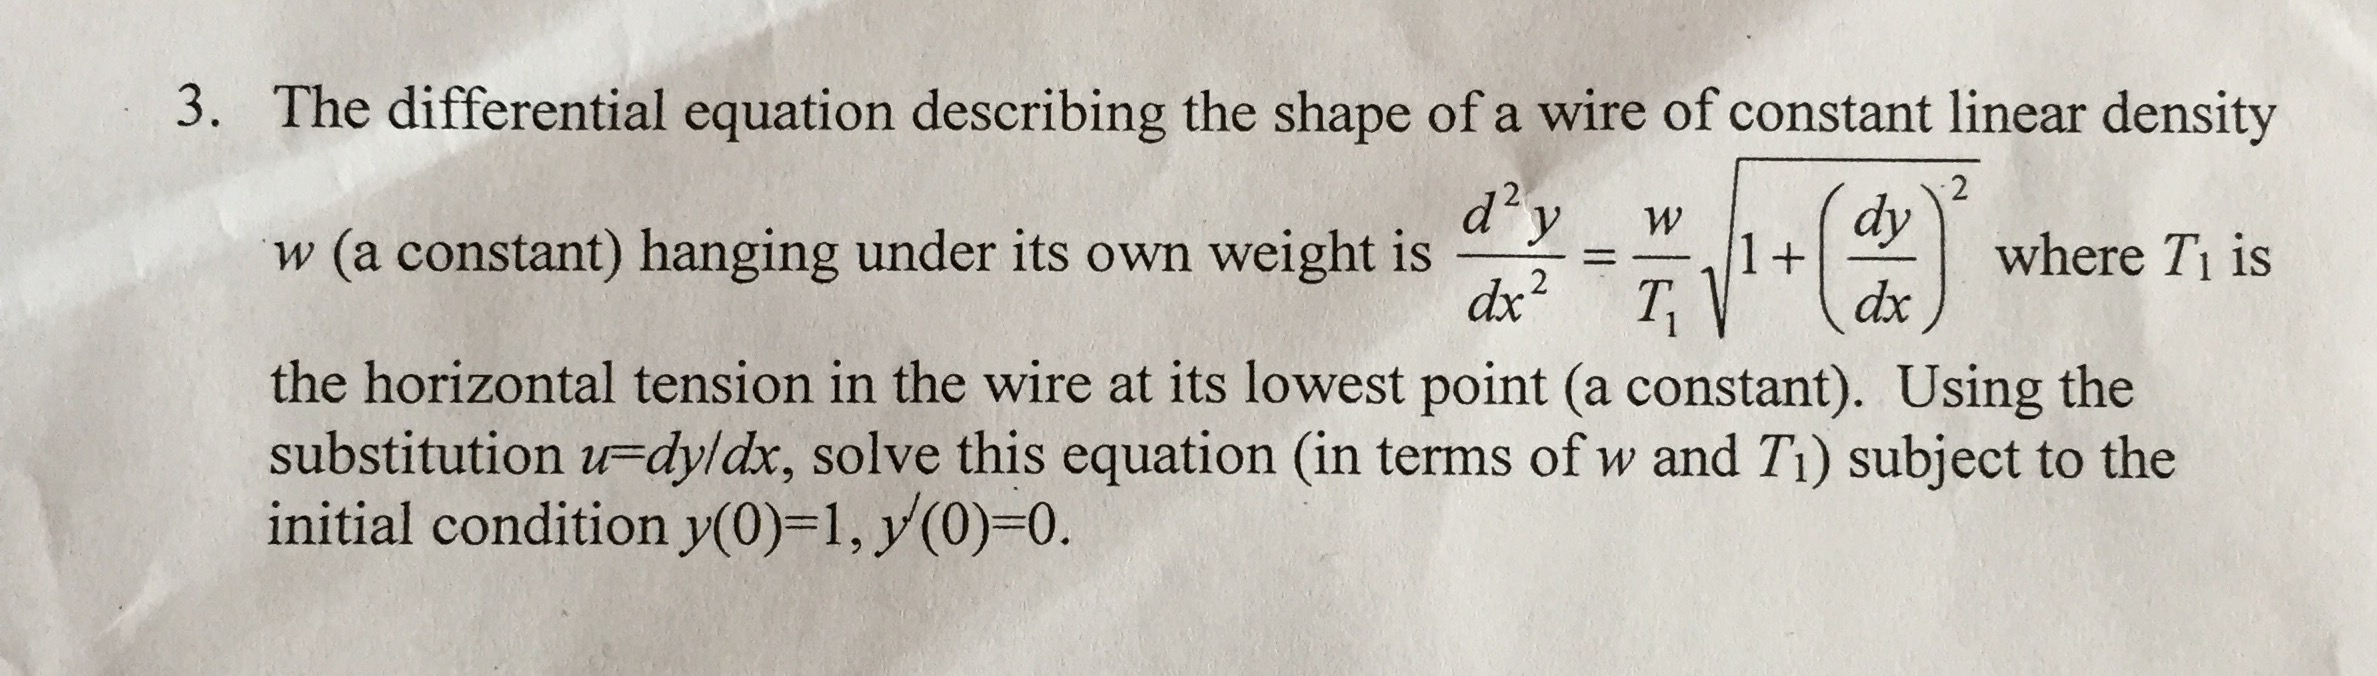 Solved: The Differential Equation Describing The Shape Of ...